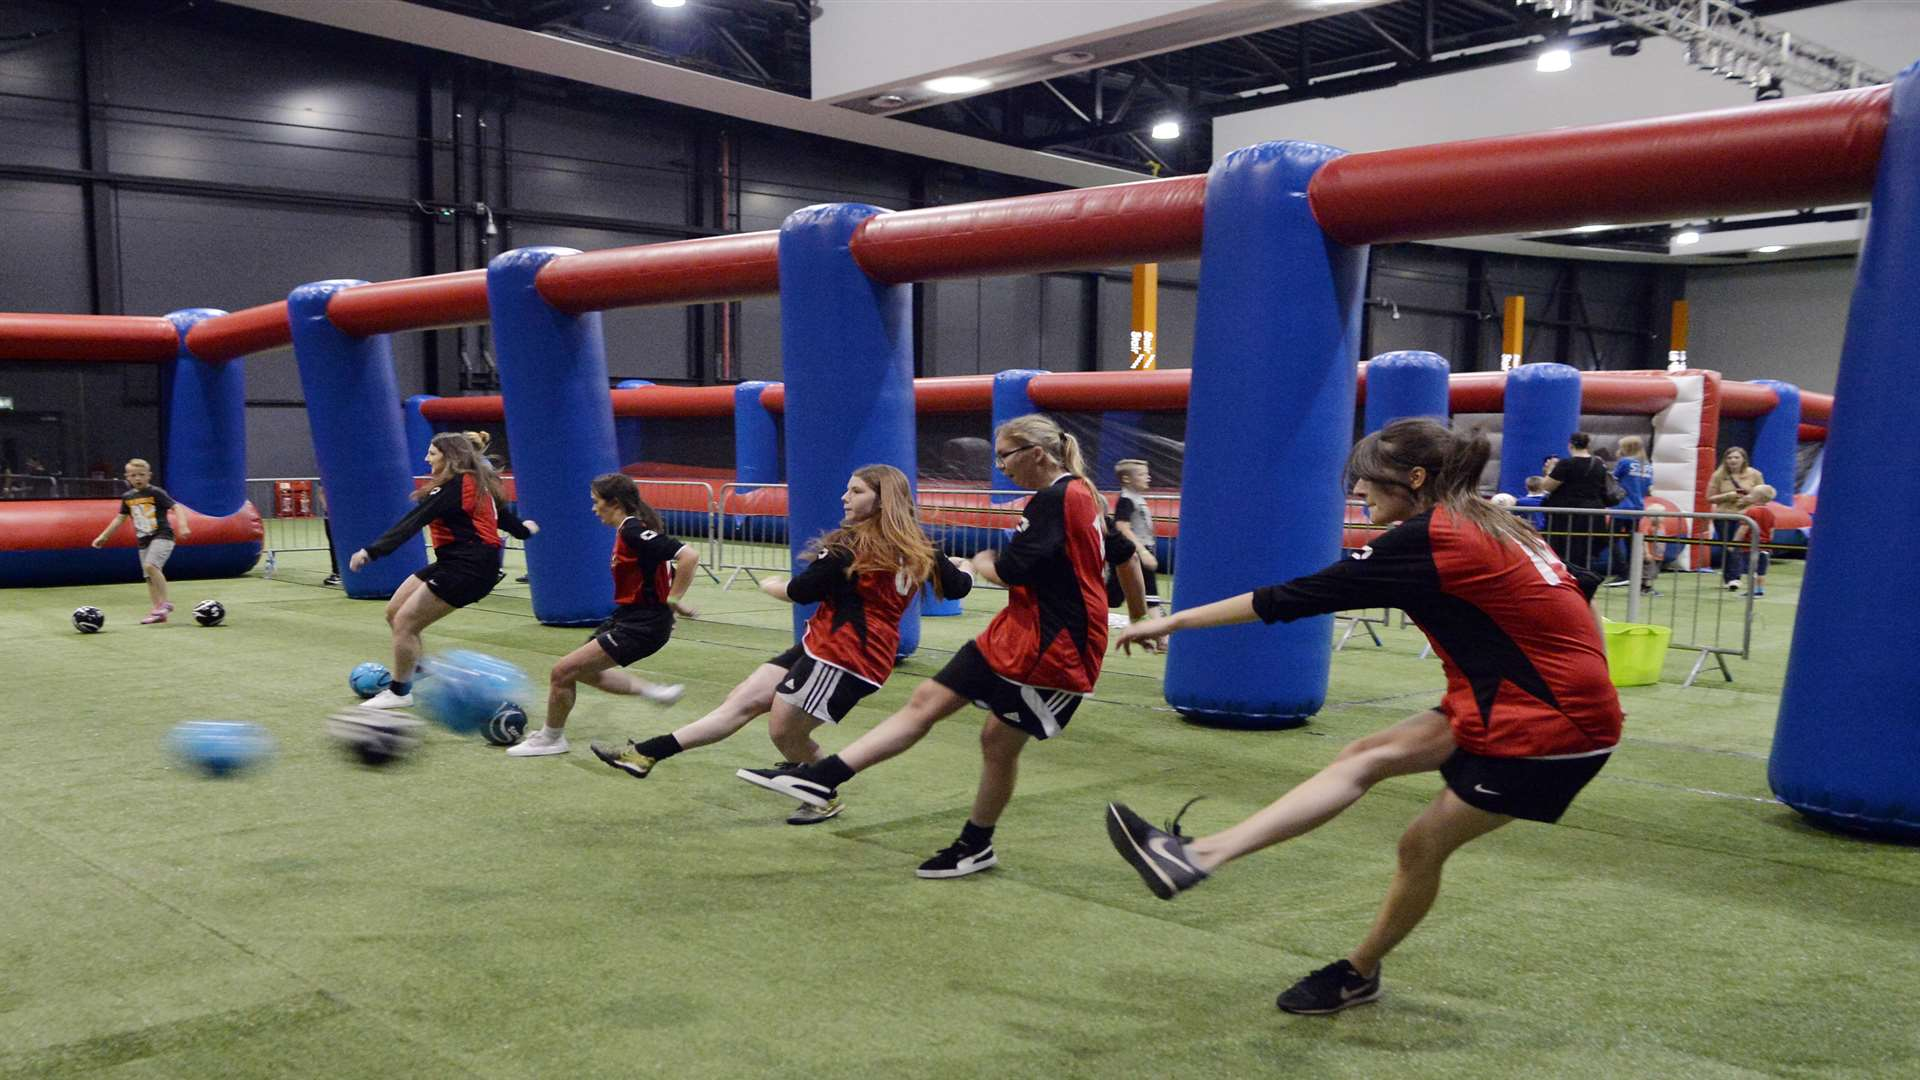 Bluewater's indoor football park